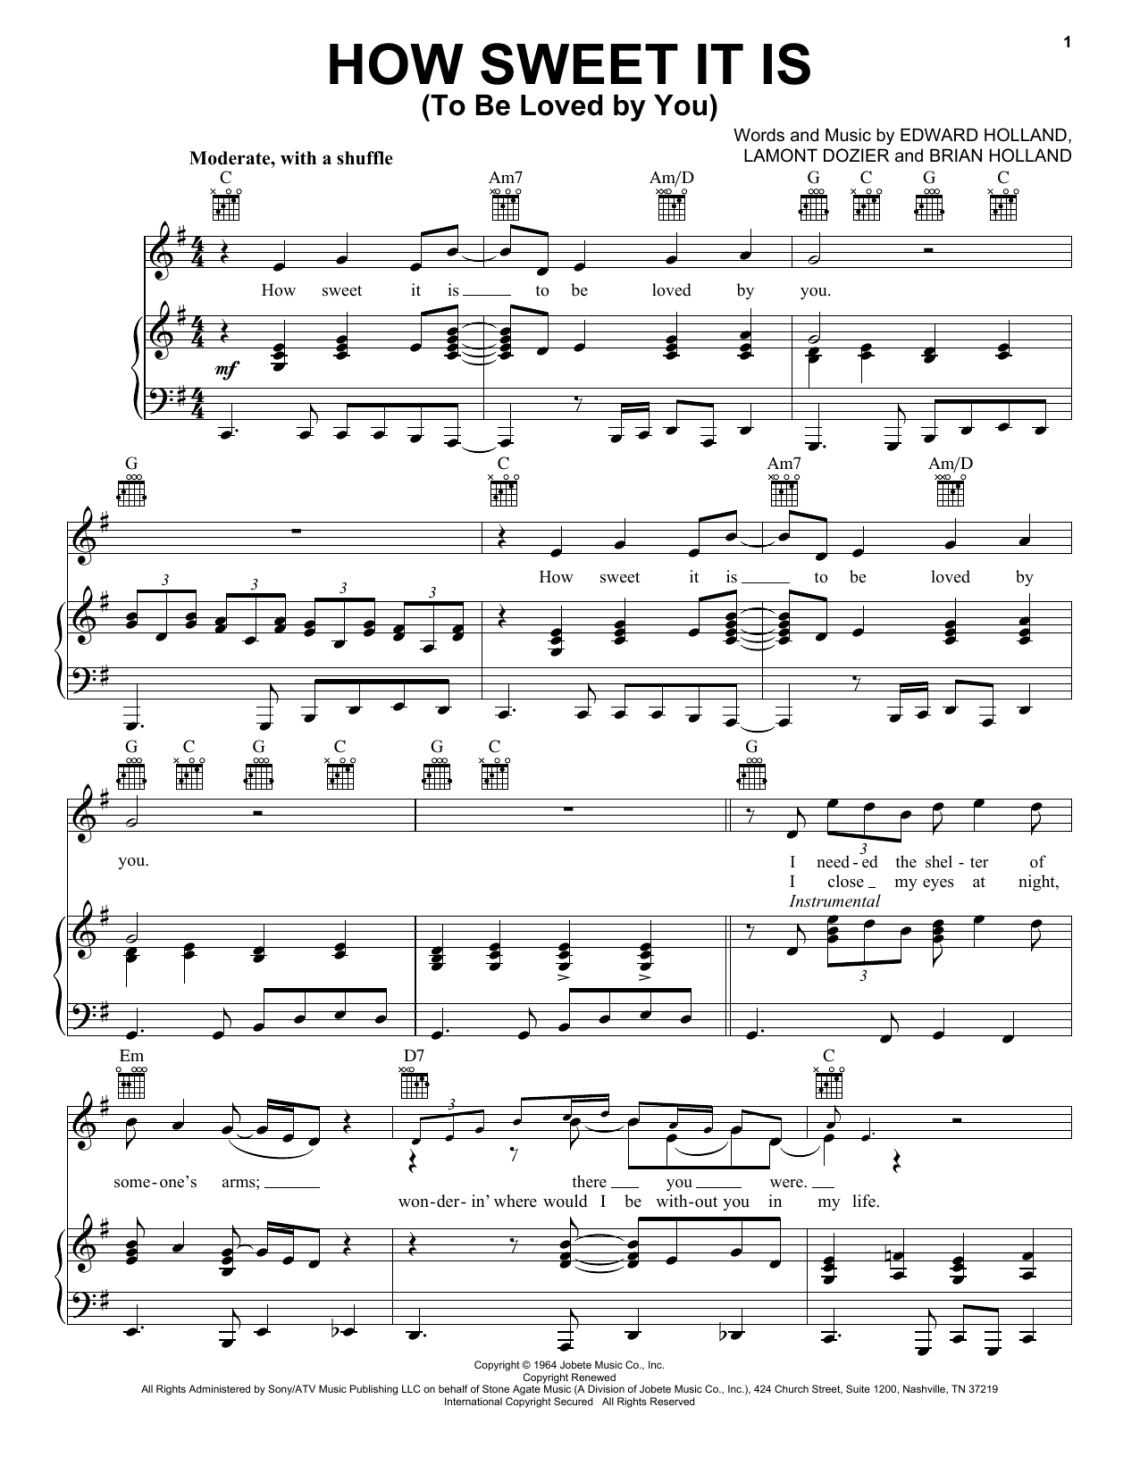 Download How Sweet It Is (To Be Loved By You) | Sheet Music Direct